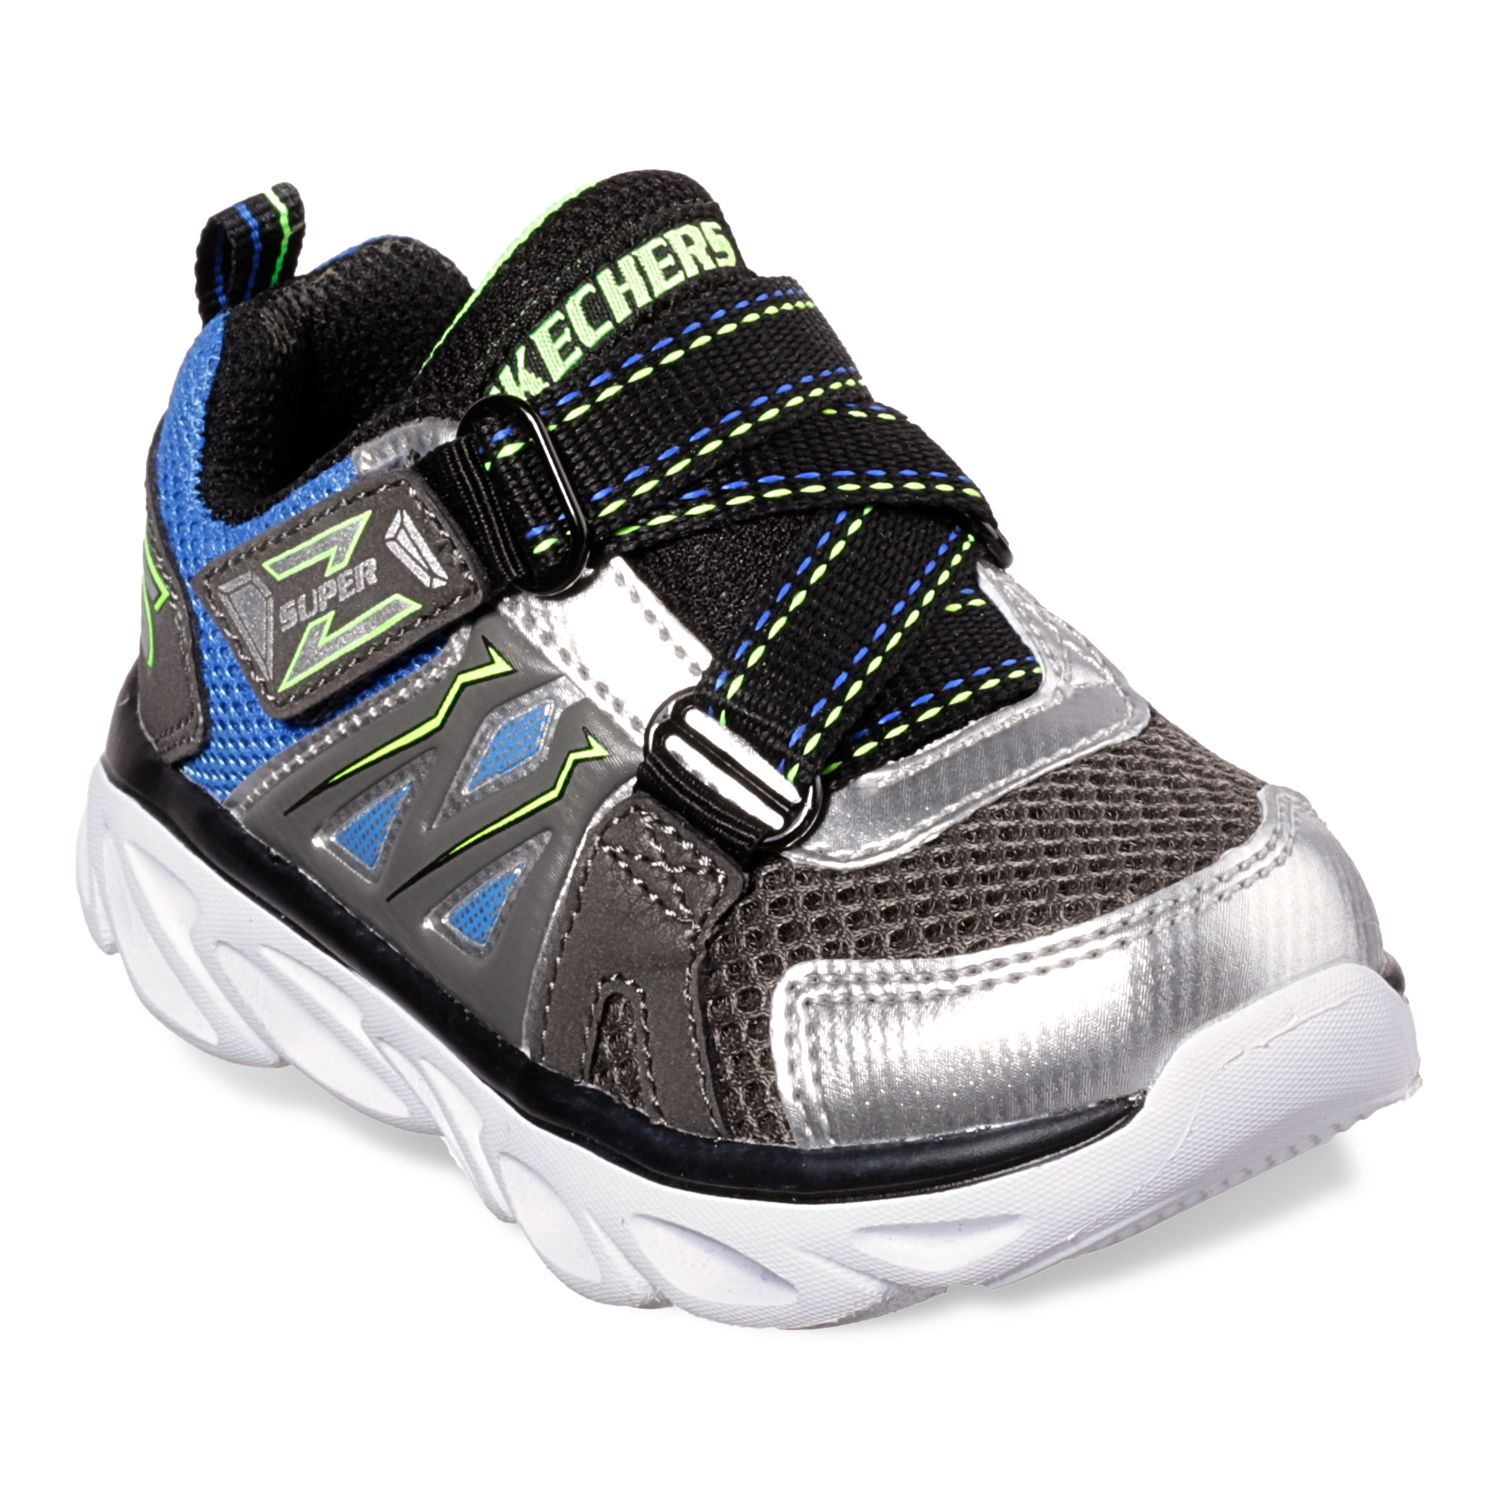 skechers toddler boy shoes